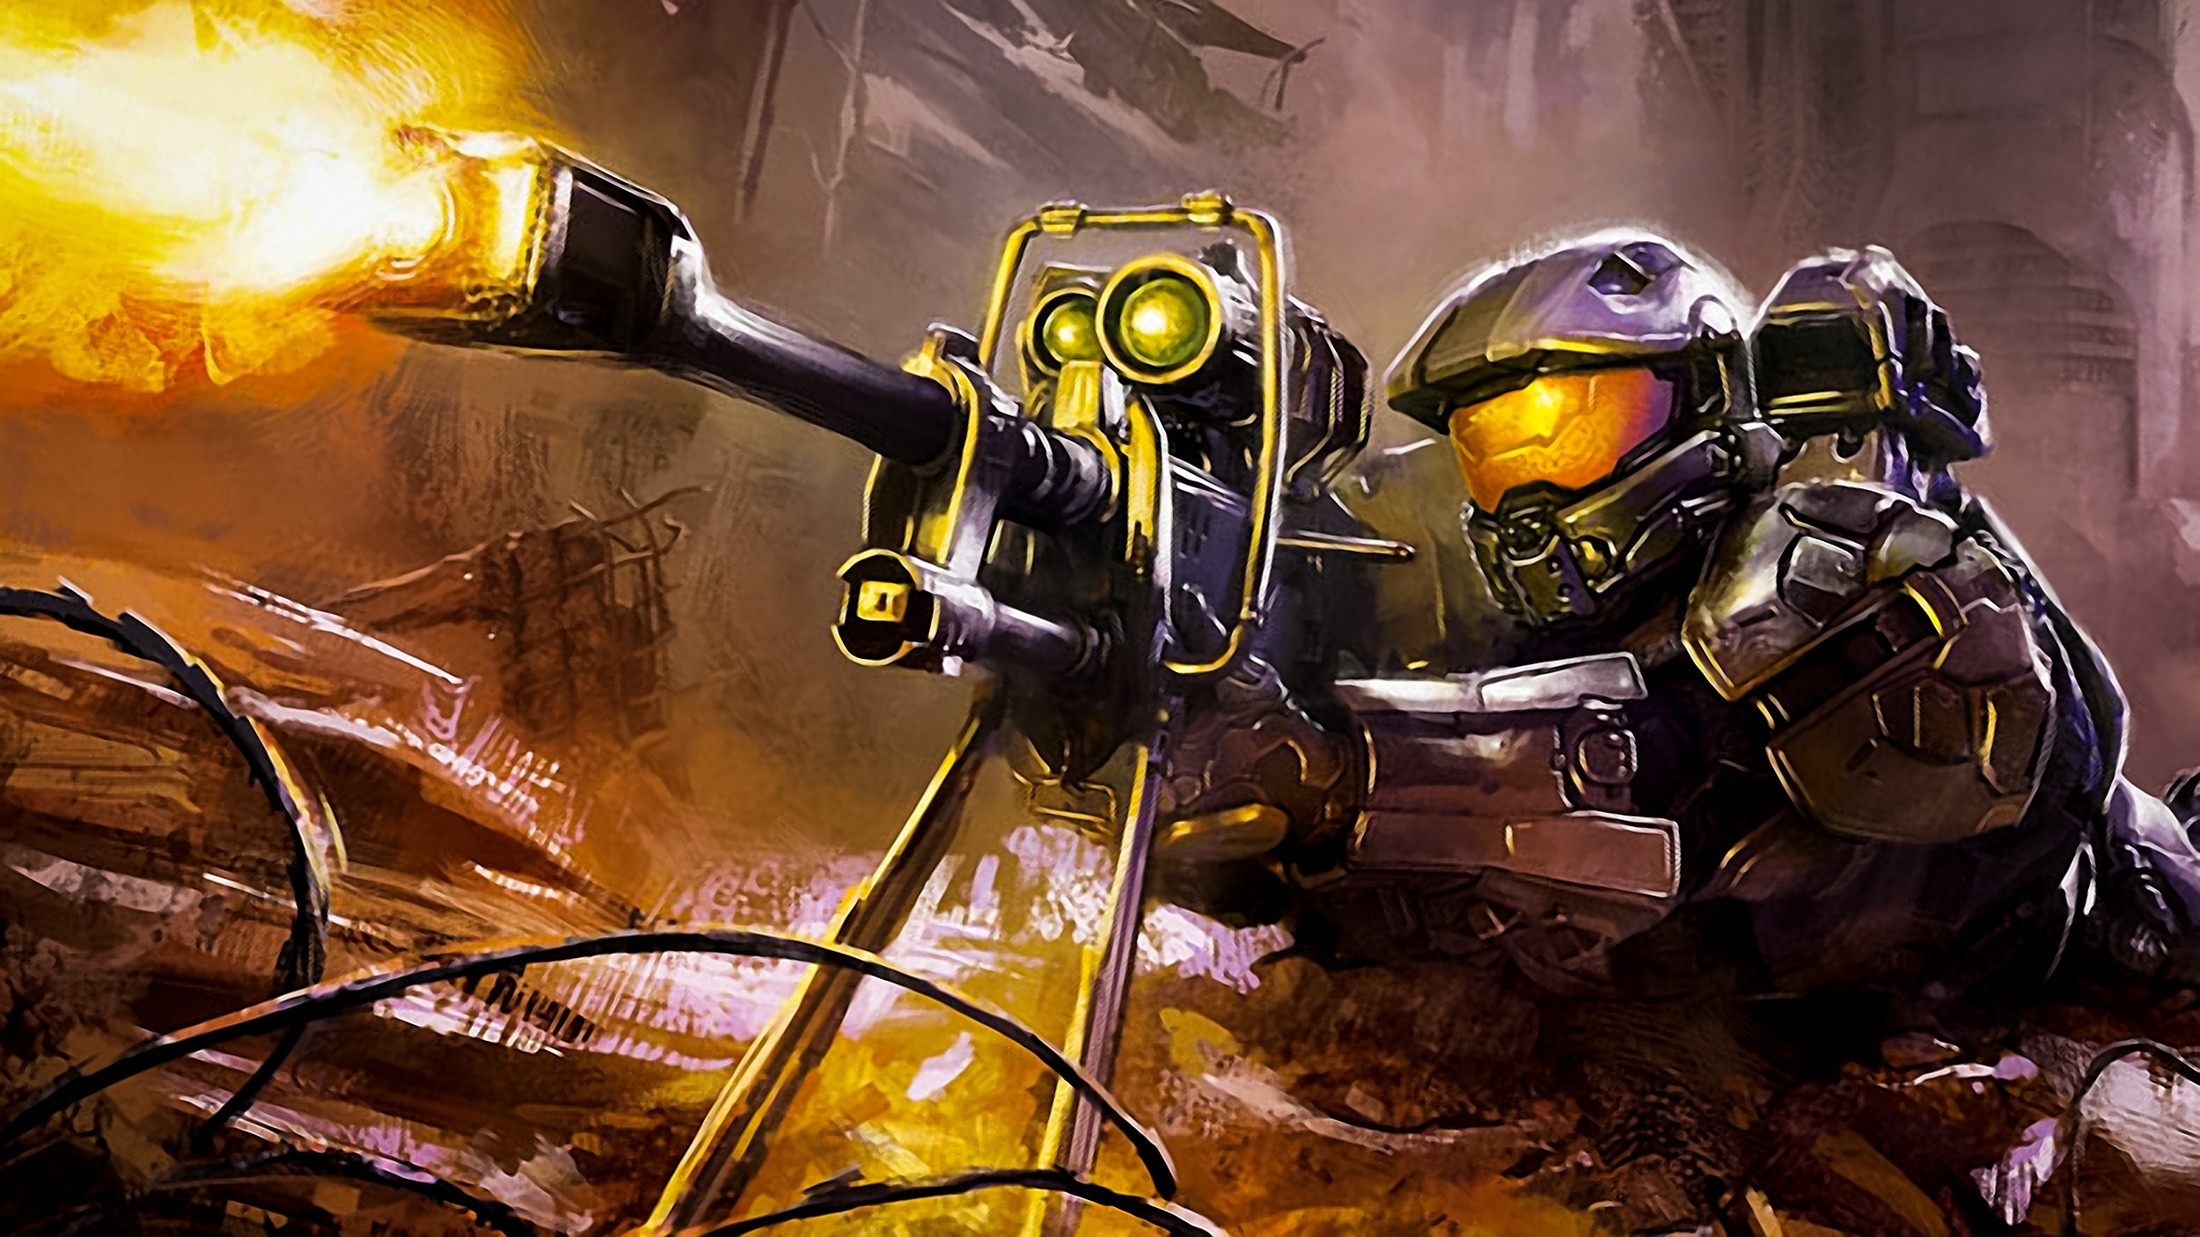 Halo Master Chief HD Background Wallpapers Amazing 1600×900 Halo 4  Wallpapers HD (51 Wallpapers) | Adorable Wallpapers | Desktop | Pinterest |  Wallpaper and …